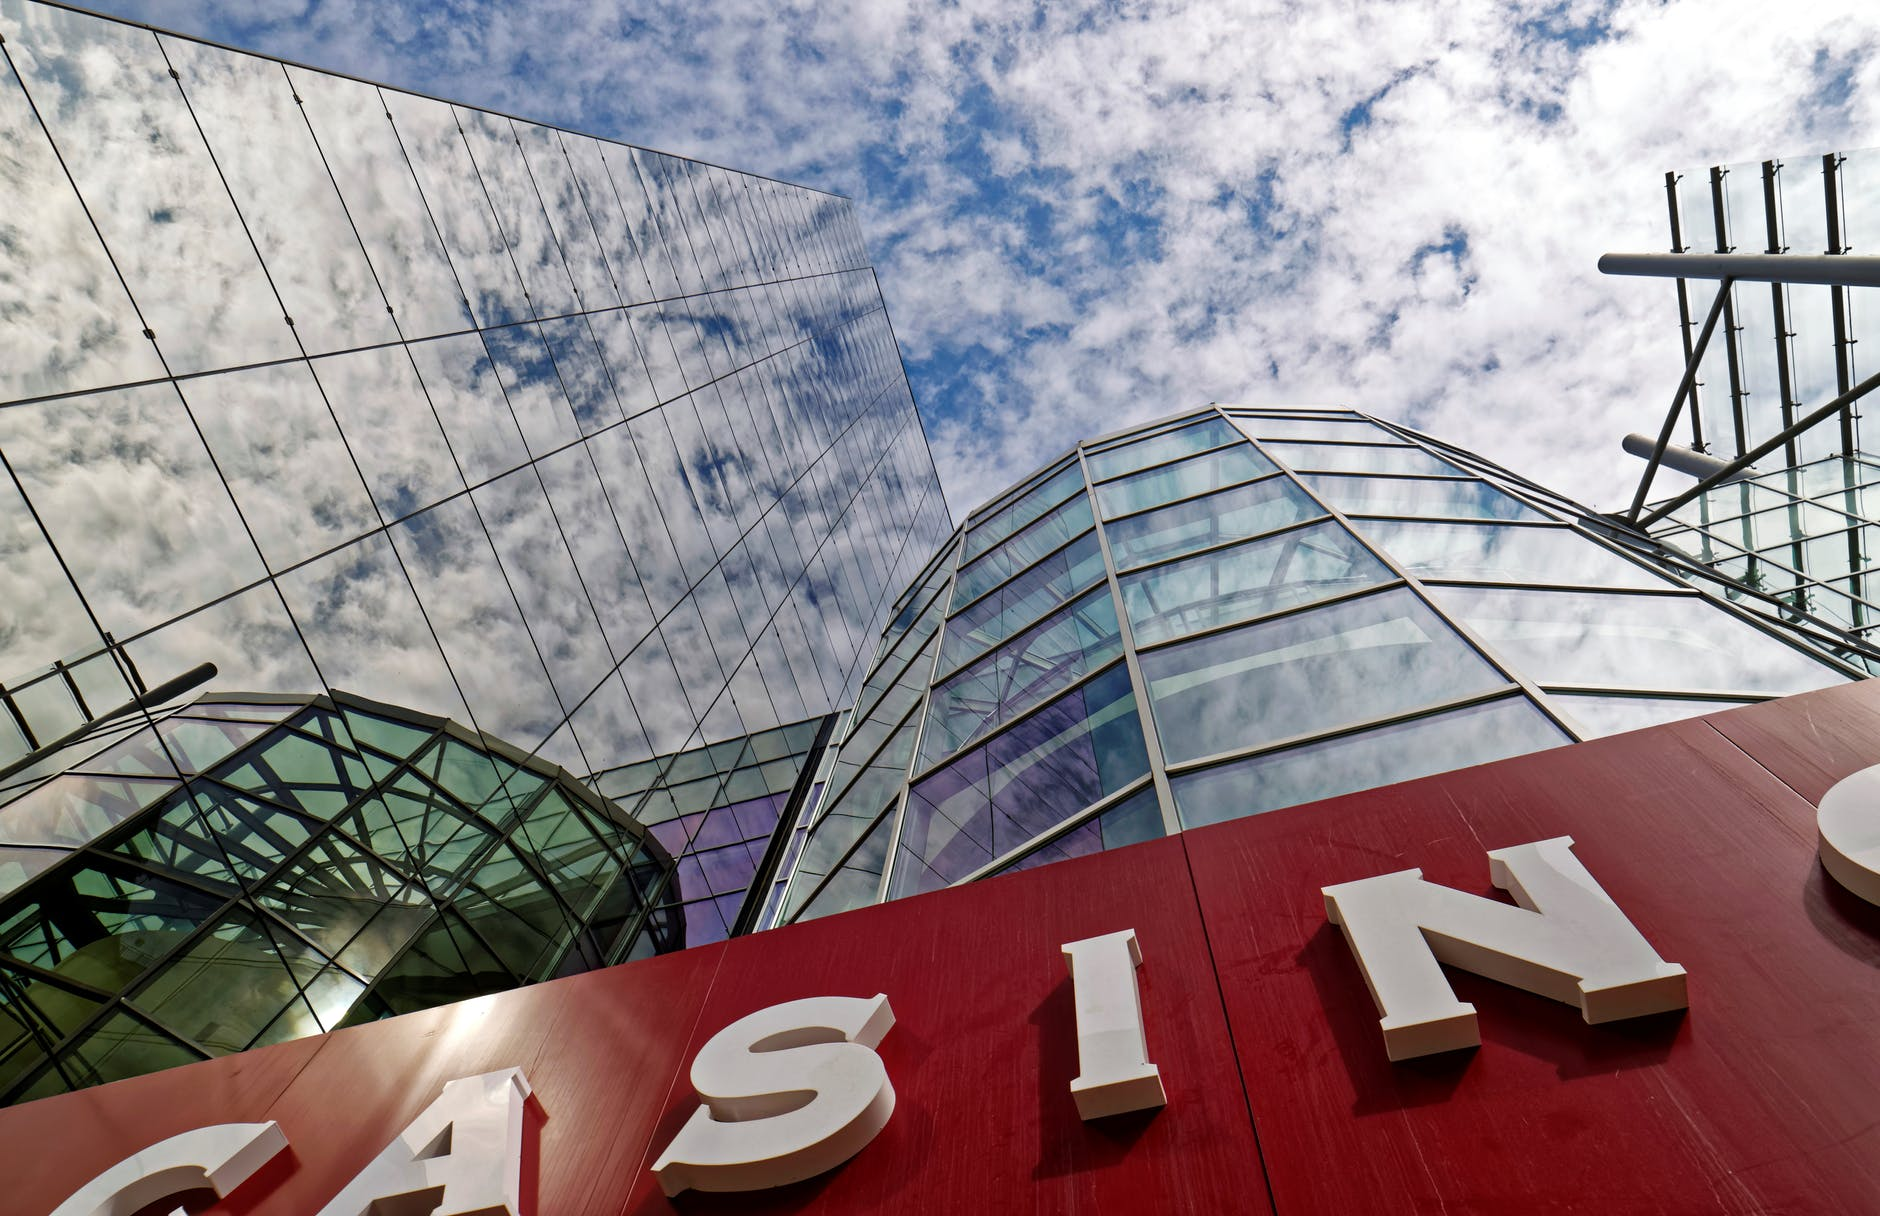 PostImage Make a name for yourself casino building looking up angle view - 3 Reasons Why Gambling Industry Managers Should Attend Casino Gaming Events